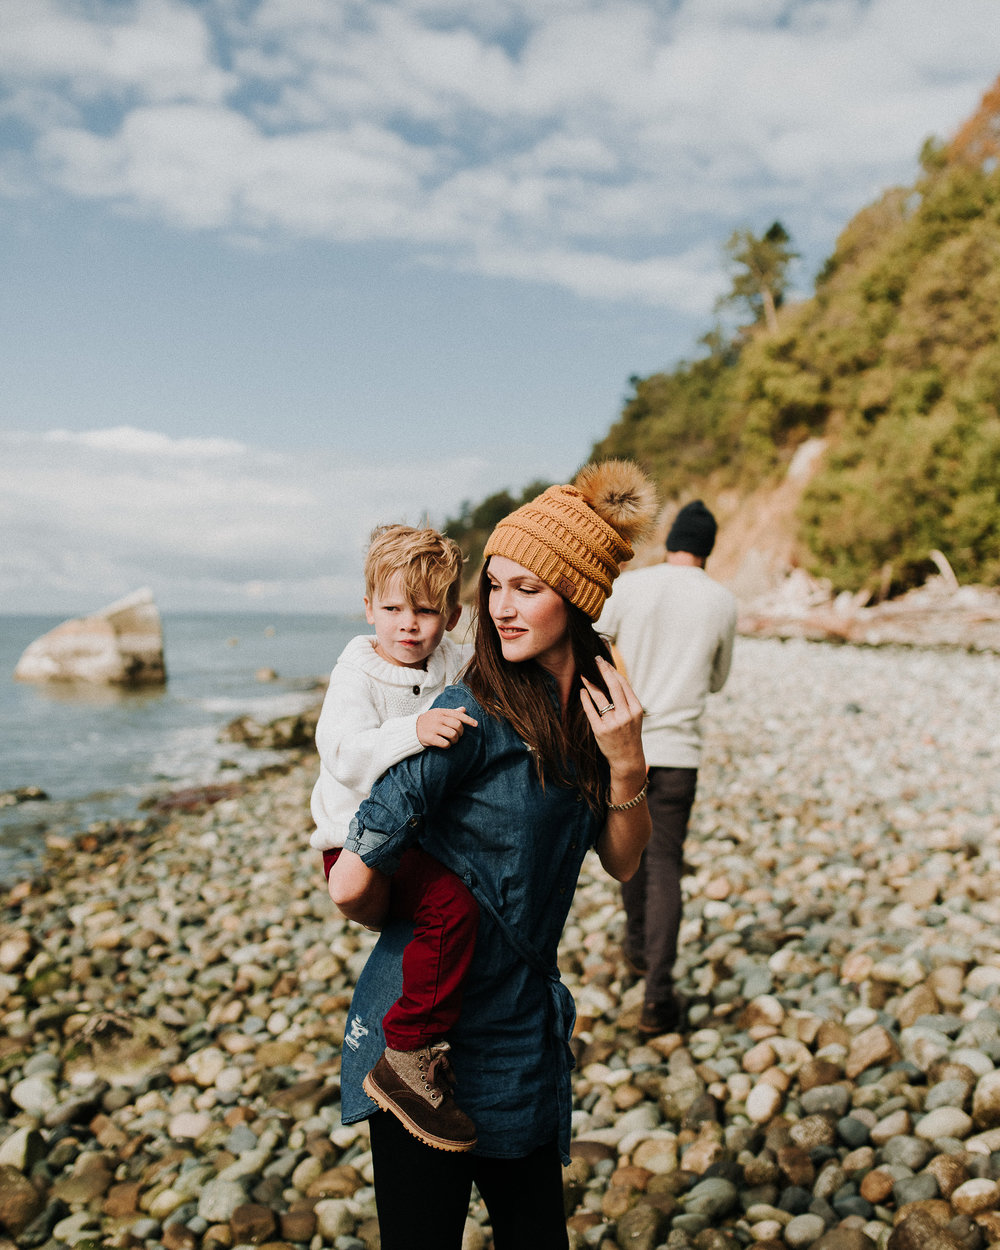 Family-Photographer-Bellingham-Wa-Brianne-Bell-Photography(Miller)